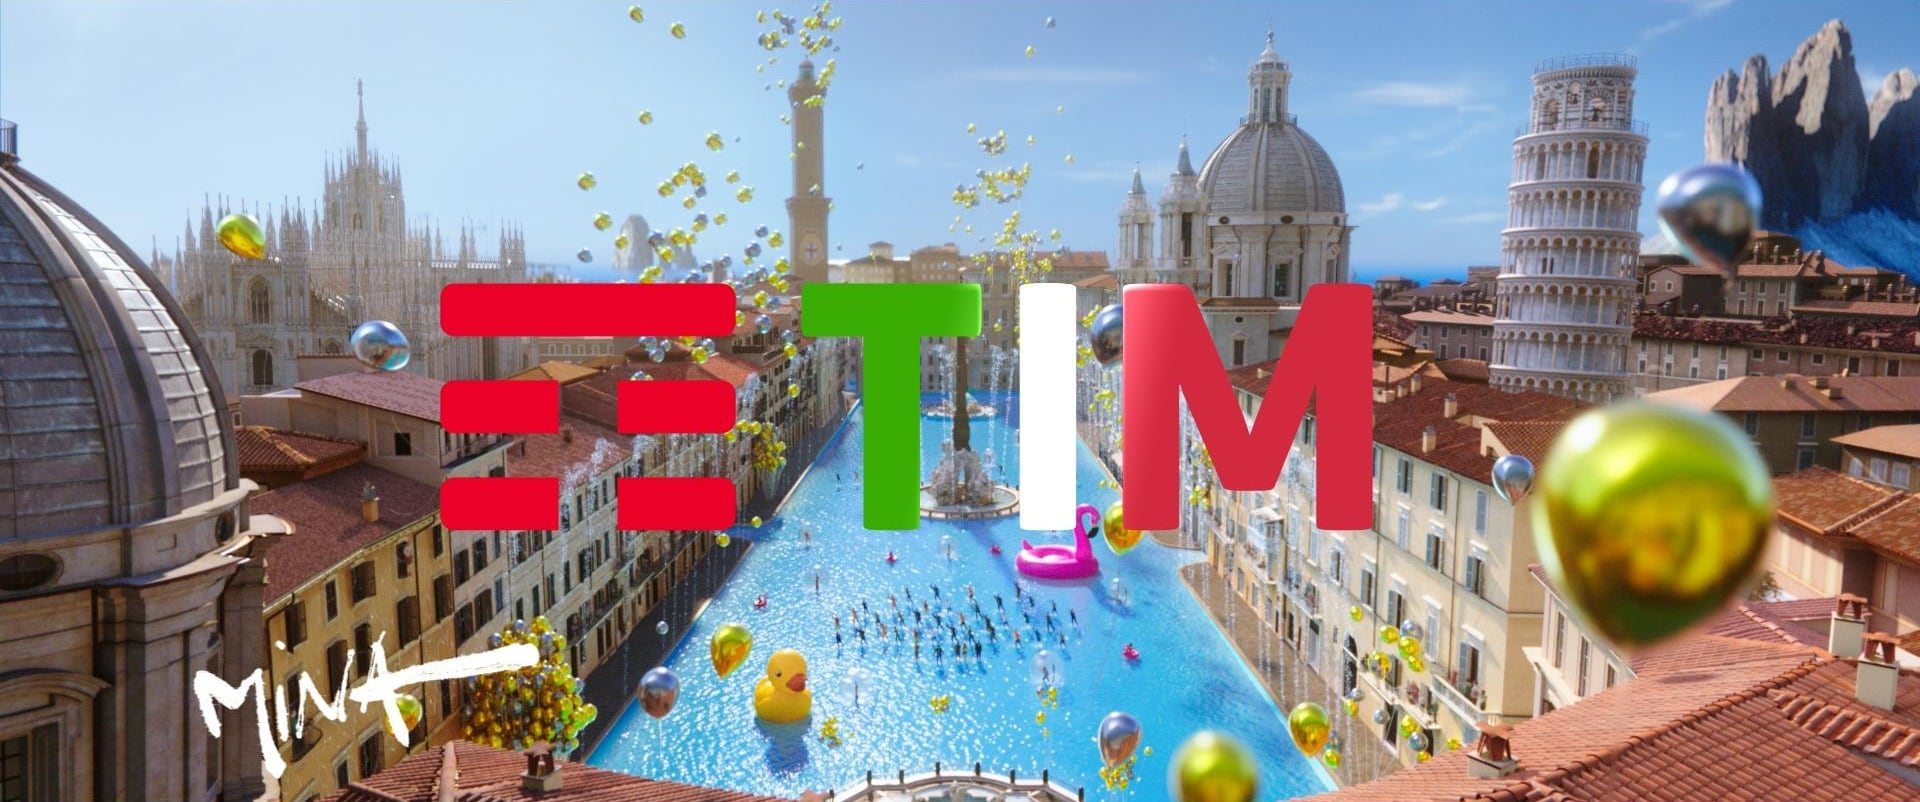 TIM Party e i 3 mesi gratis di Google One con 100 GB di spazio cloud inclusi